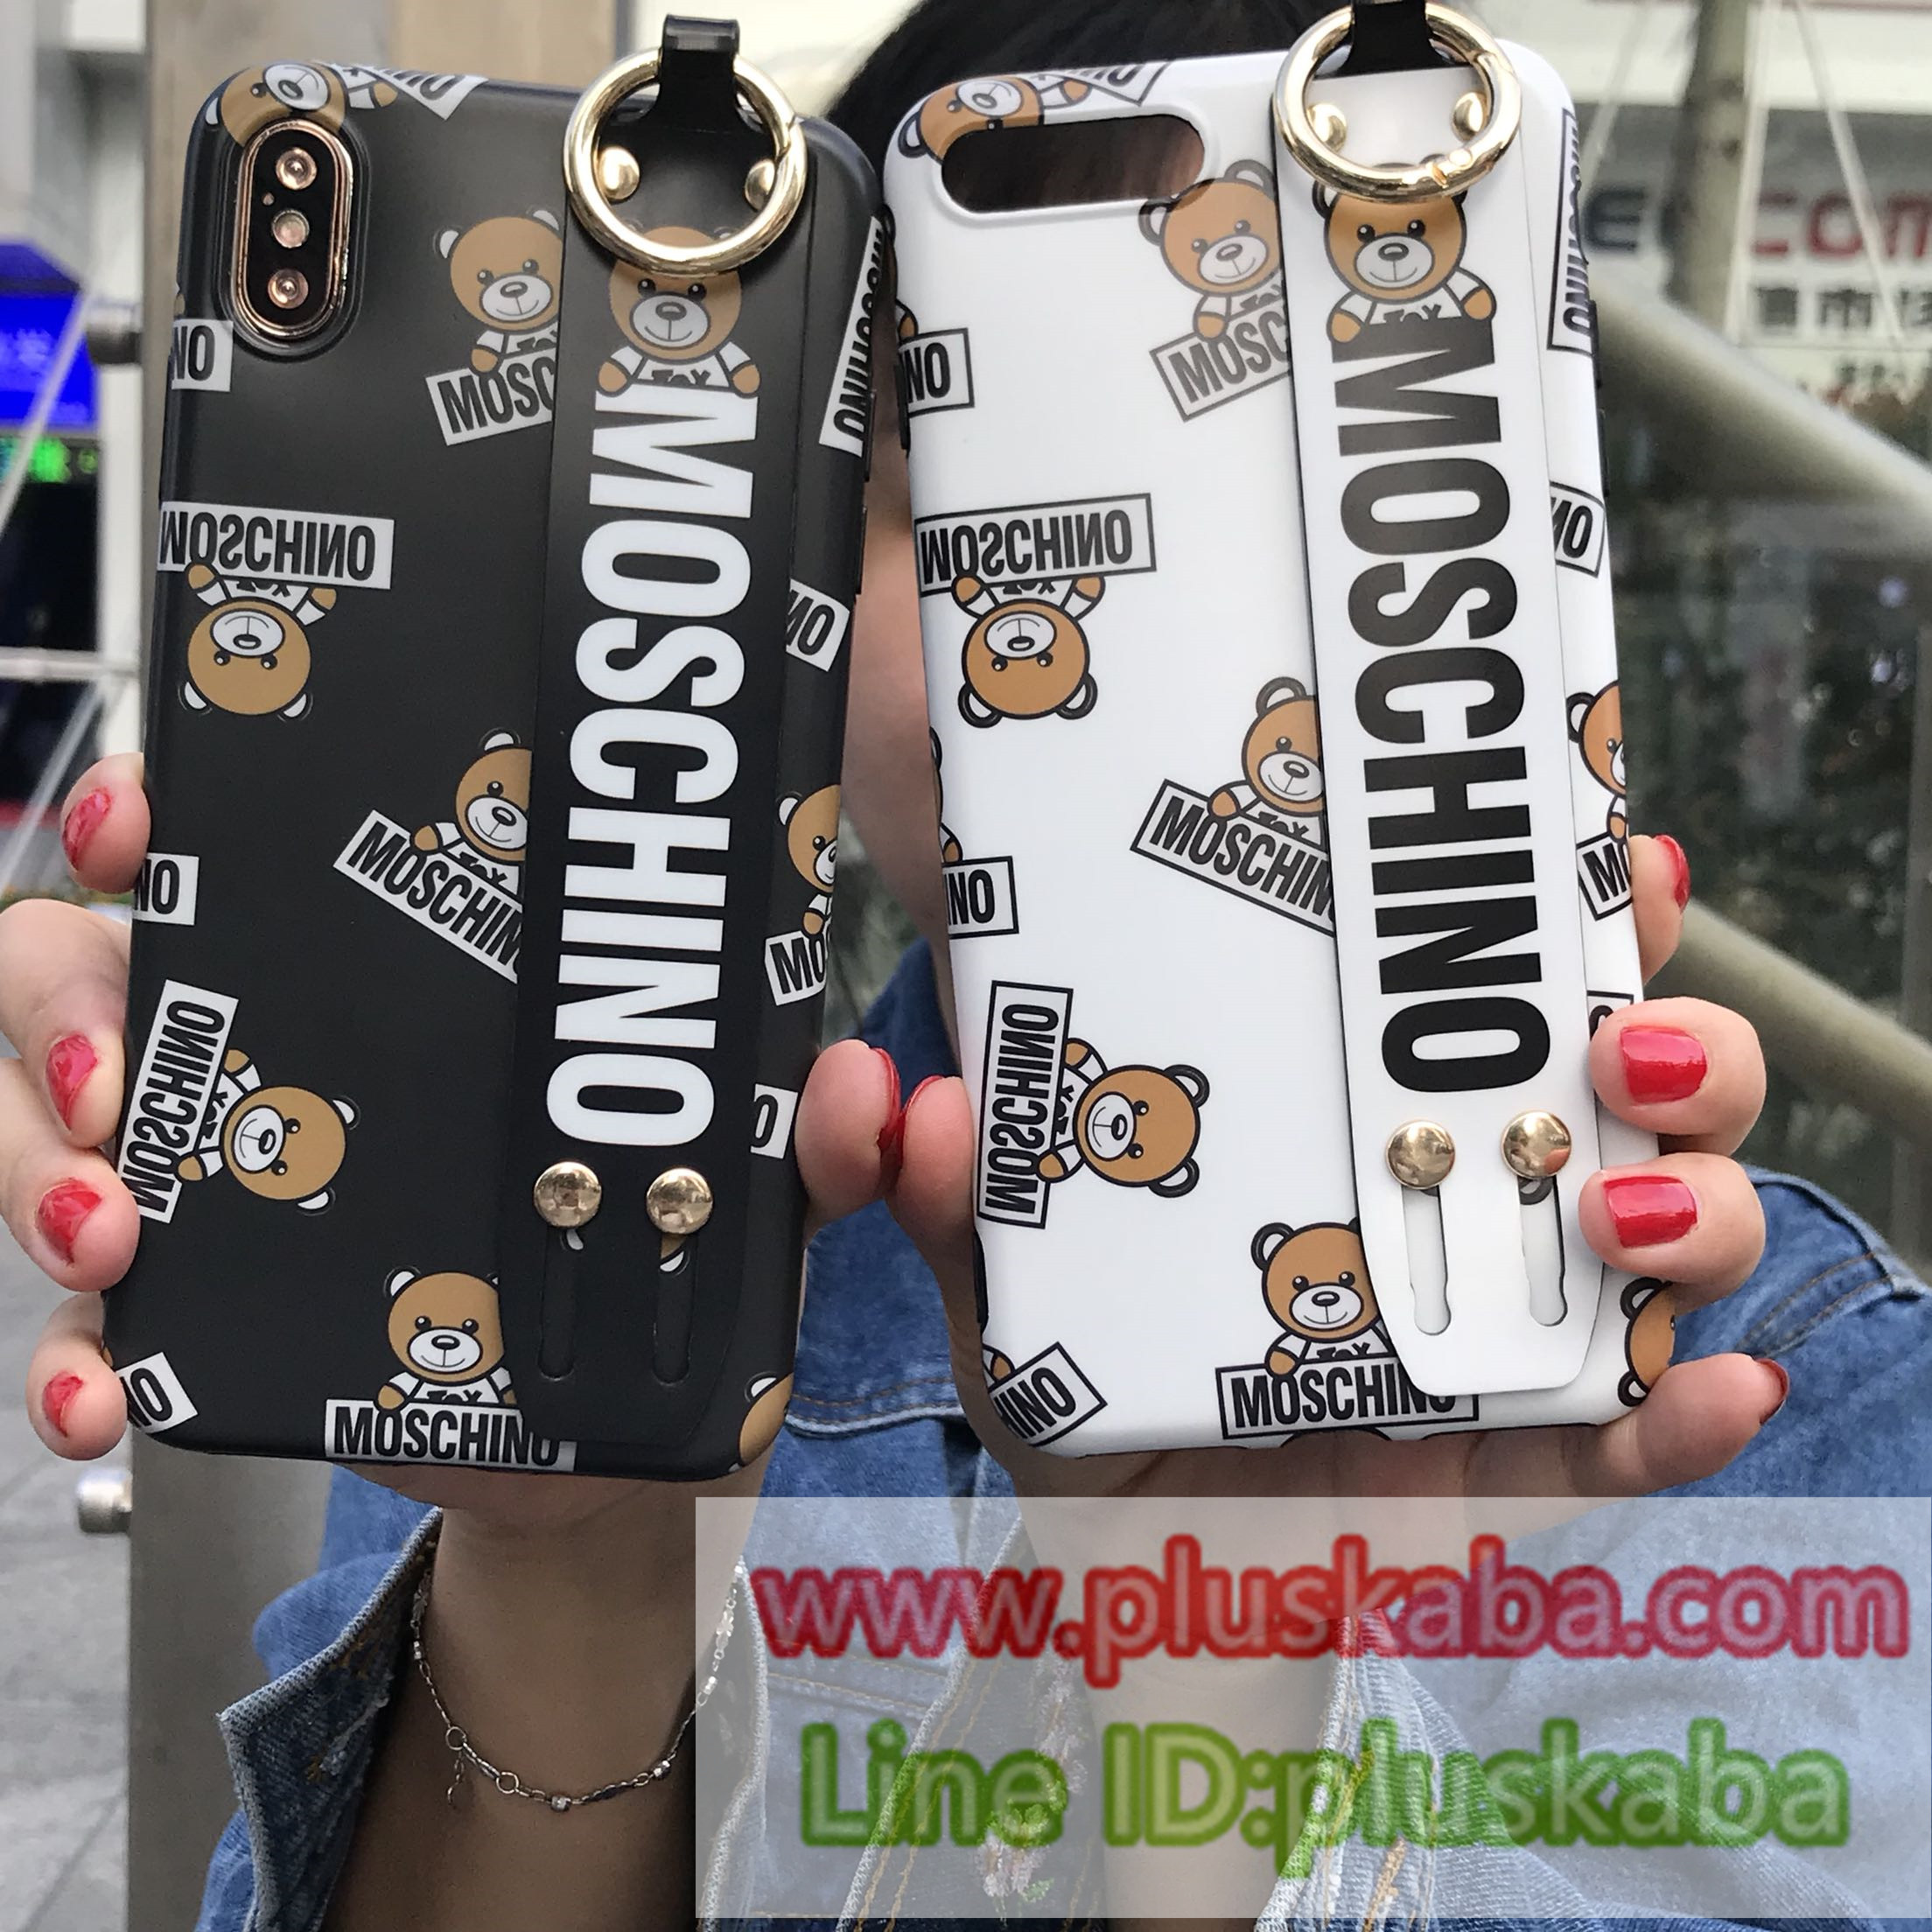 MOSCHINO iPhone Xs/Xs Max/Xr ケースクマ 熊 モスキーノ